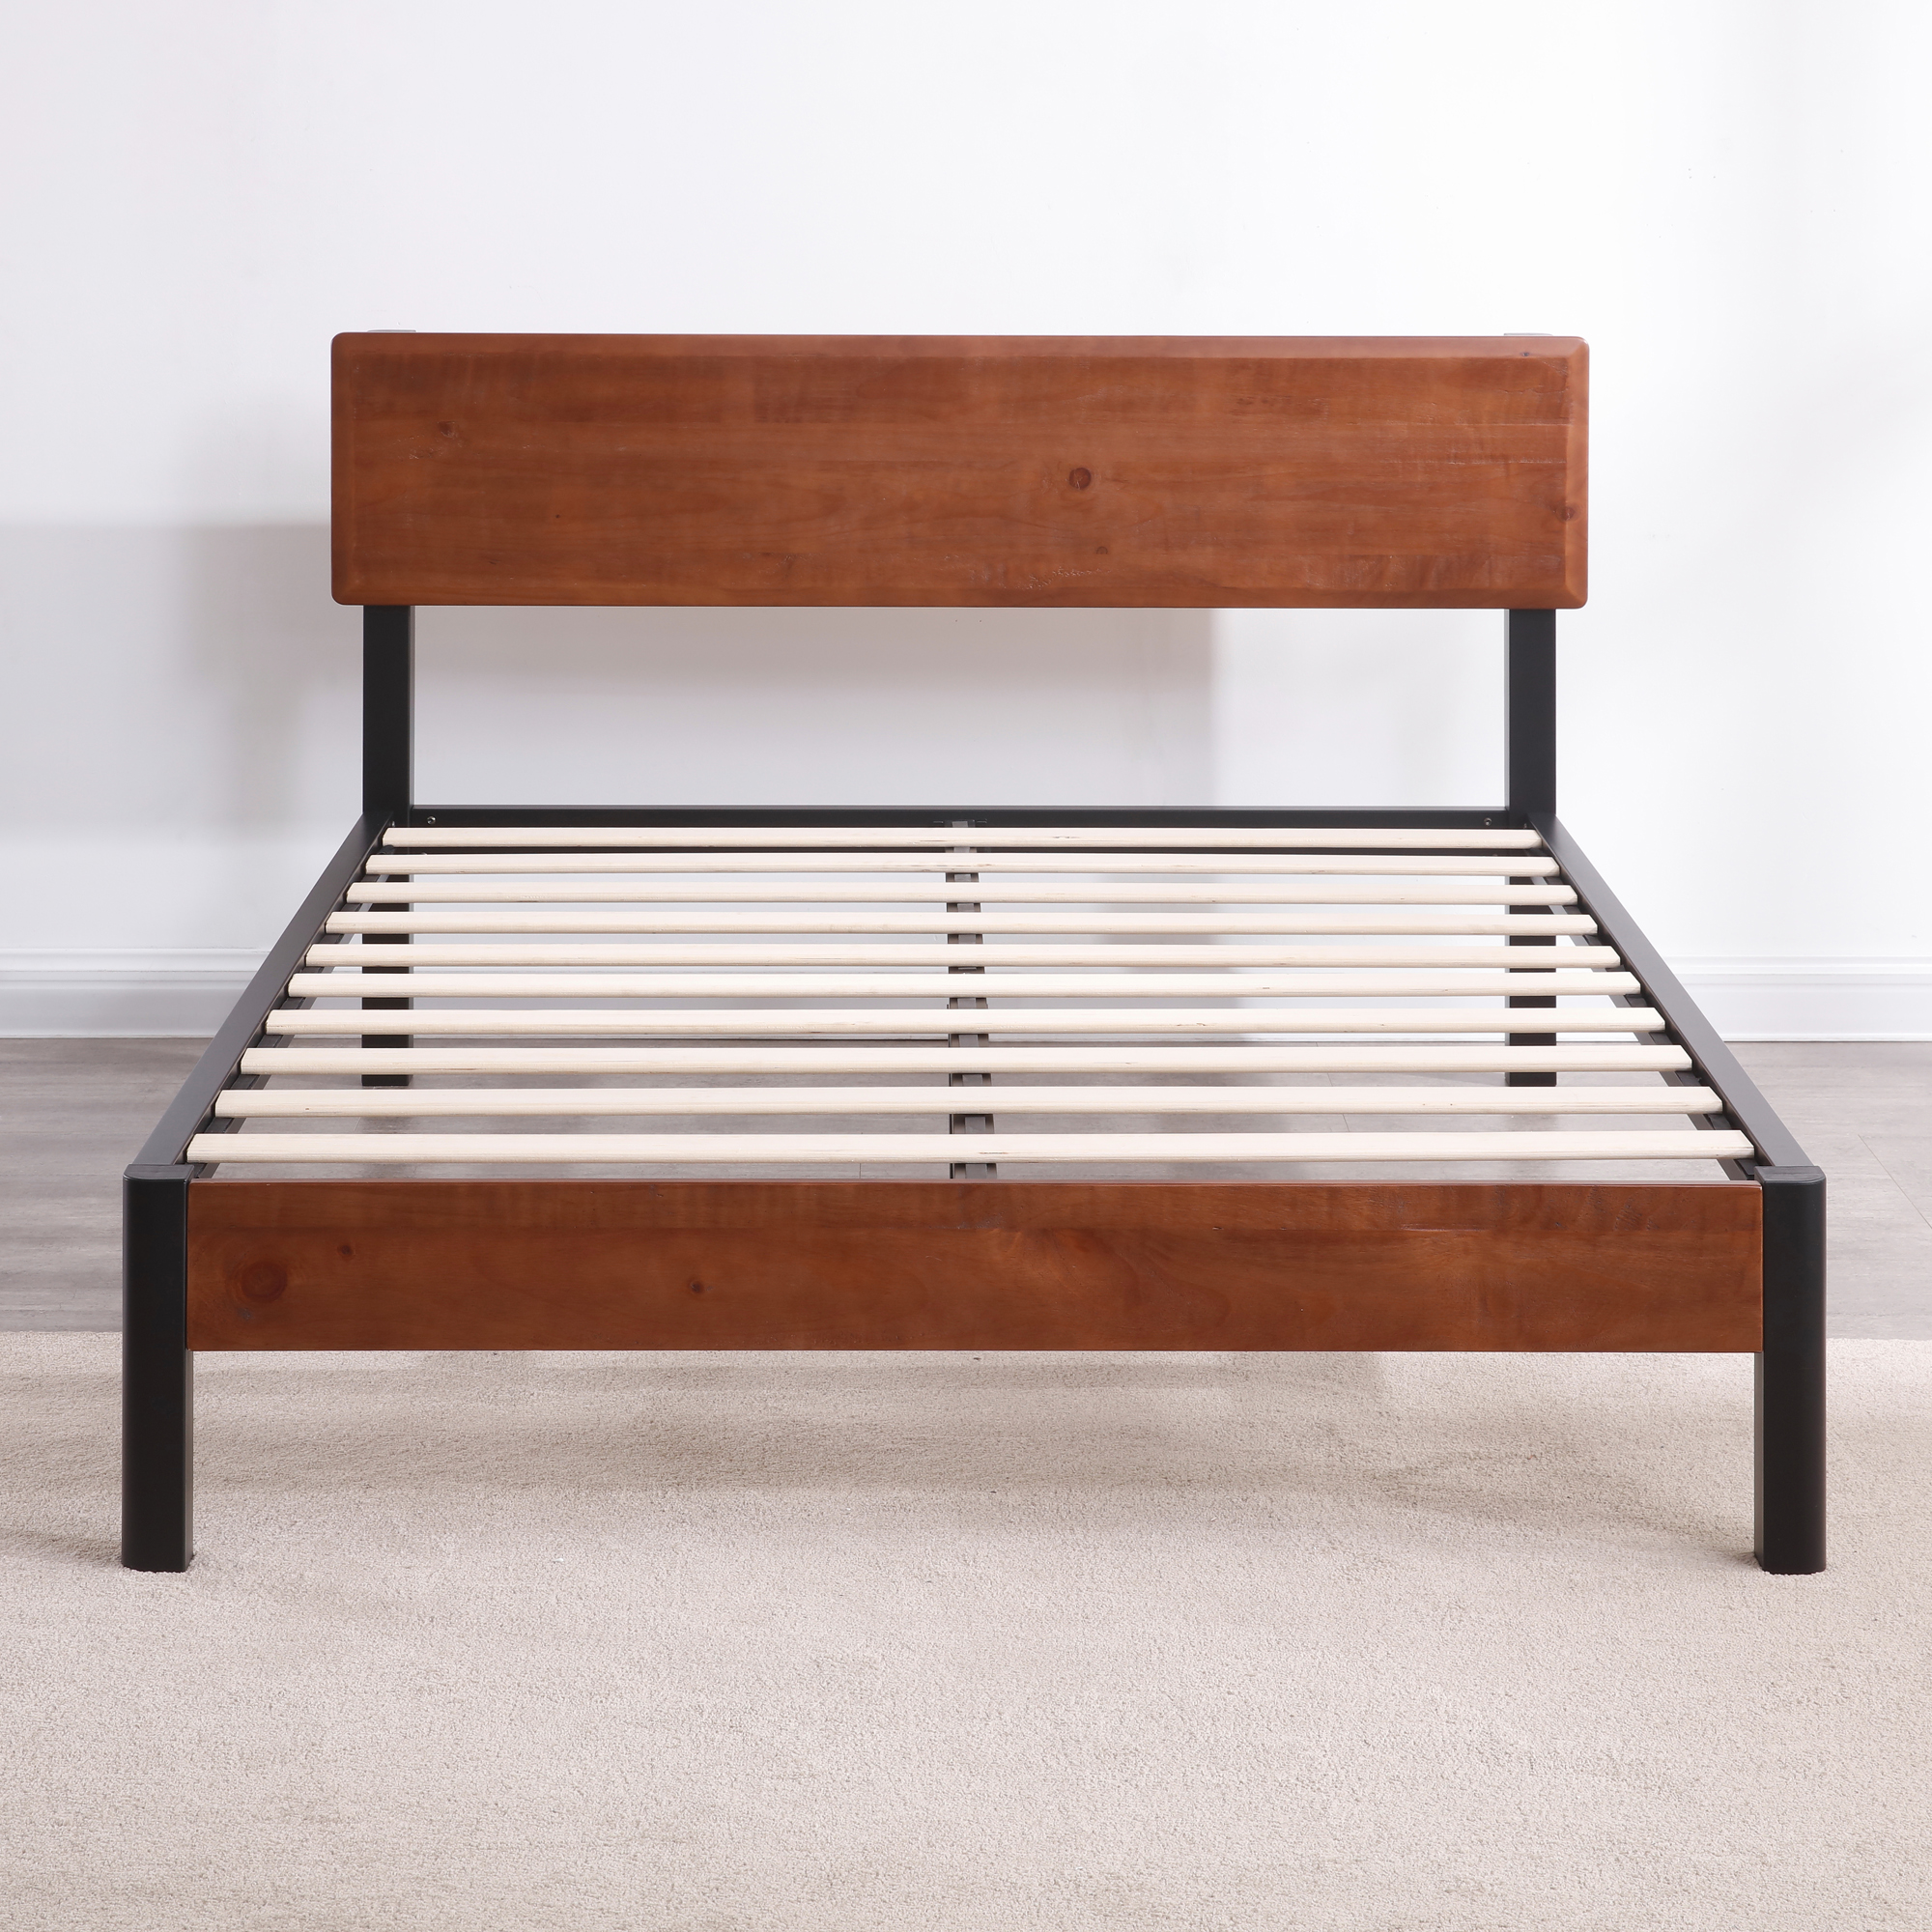 Modern Sleep Portland Wood Slat and Metal Platform Bed Frame with Solid Wood Headboard | Mattress Foundation, Multiple Sizes